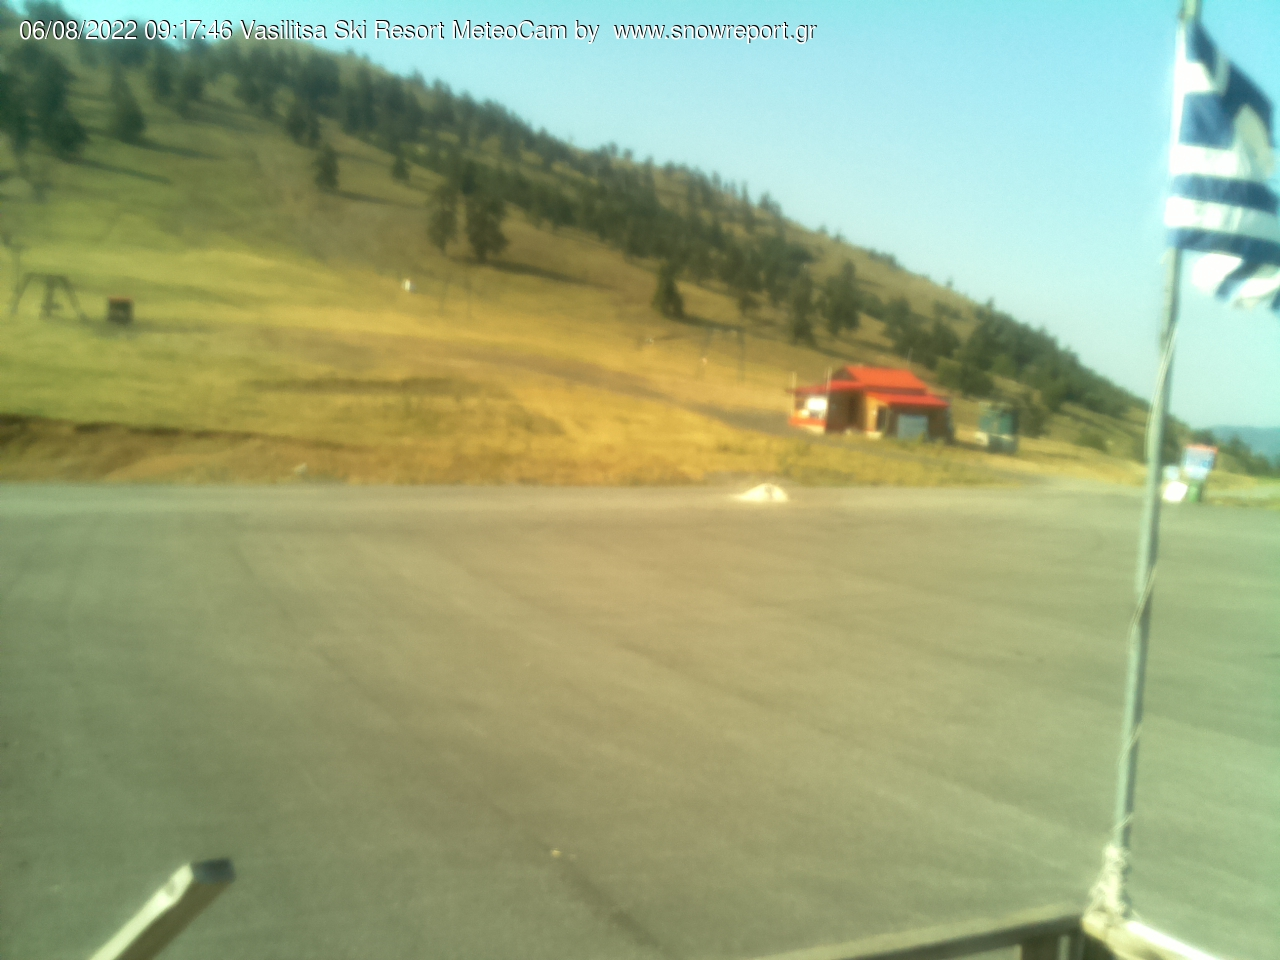 Webcam Vassilitsa ski resort - Elimeia